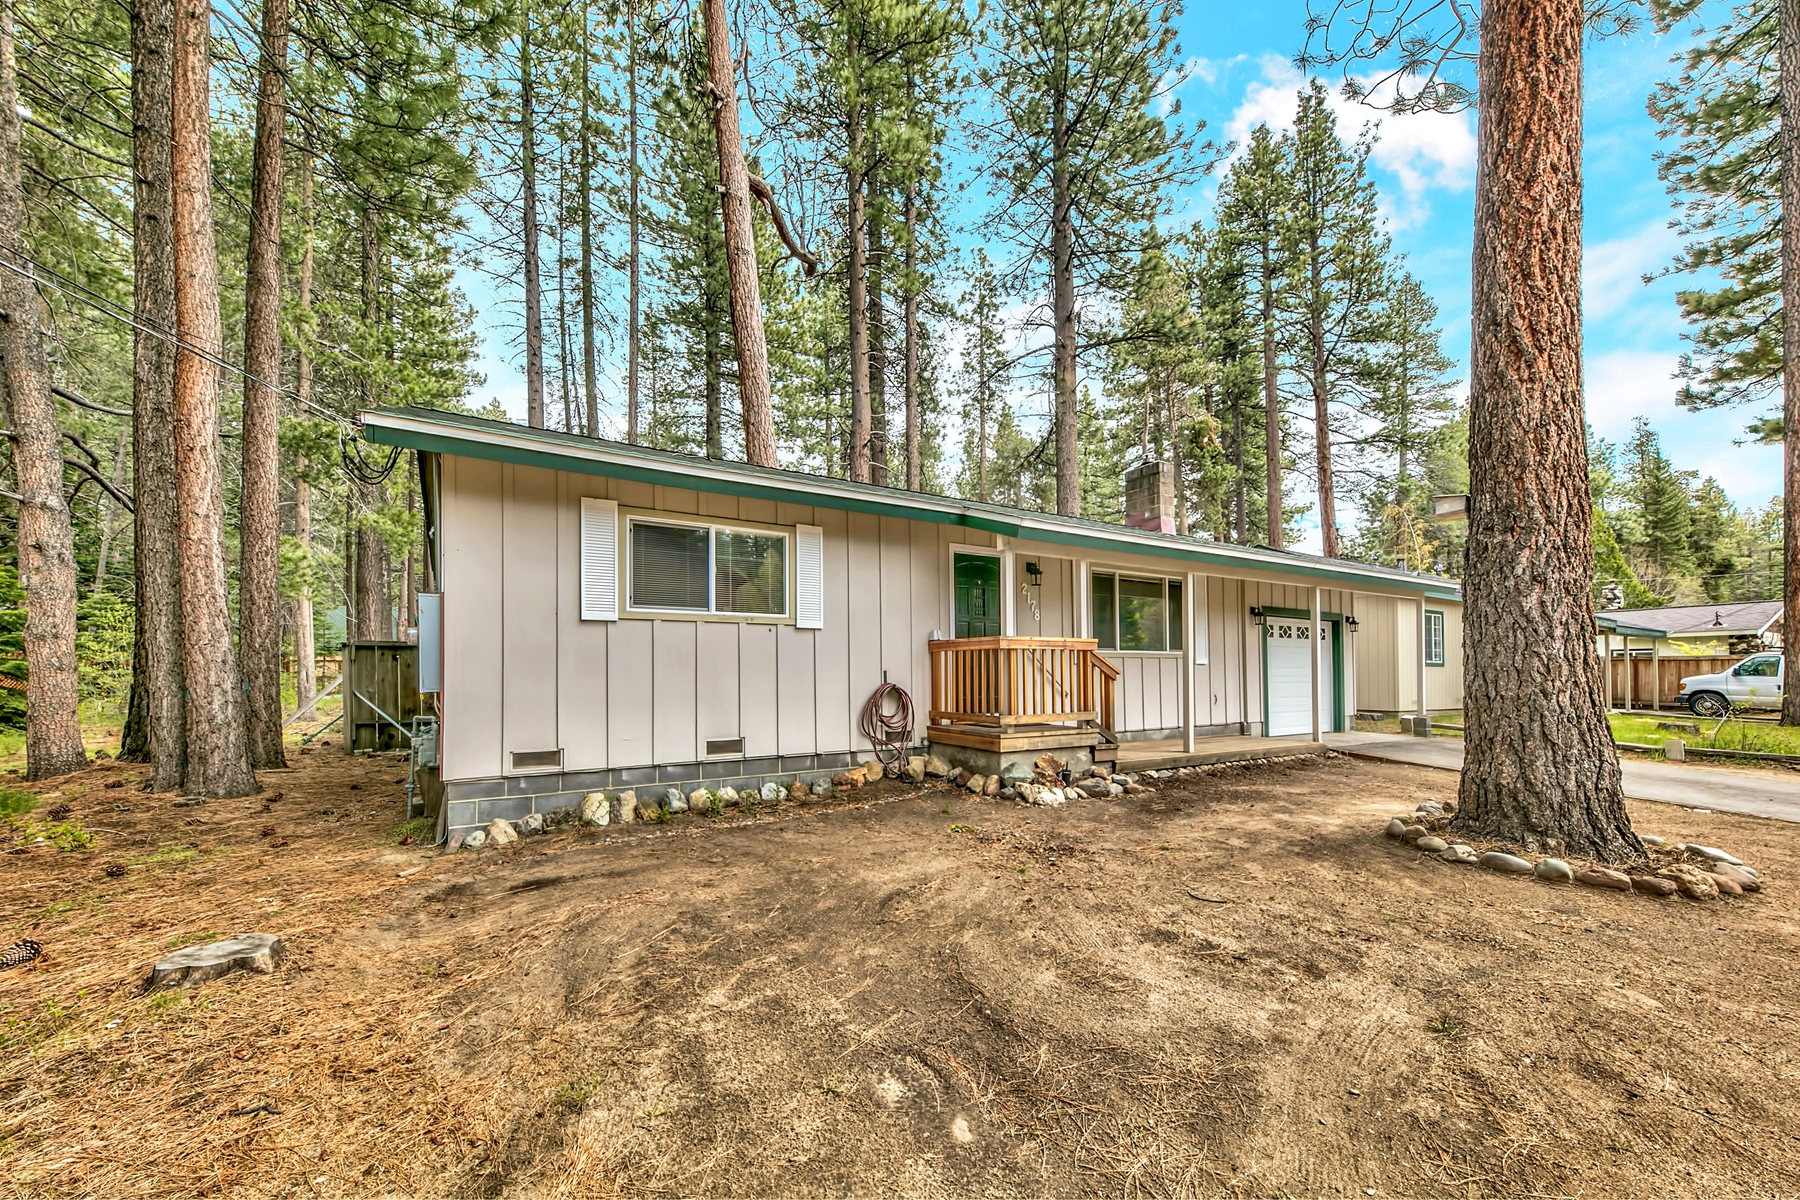 Property por un Venta en 2178 Tahoe Vista Drive, South Lake Tahoe, CA 96150 2178 Tahoe Vista Drive South Lake Tahoe, California 96150 Estados Unidos